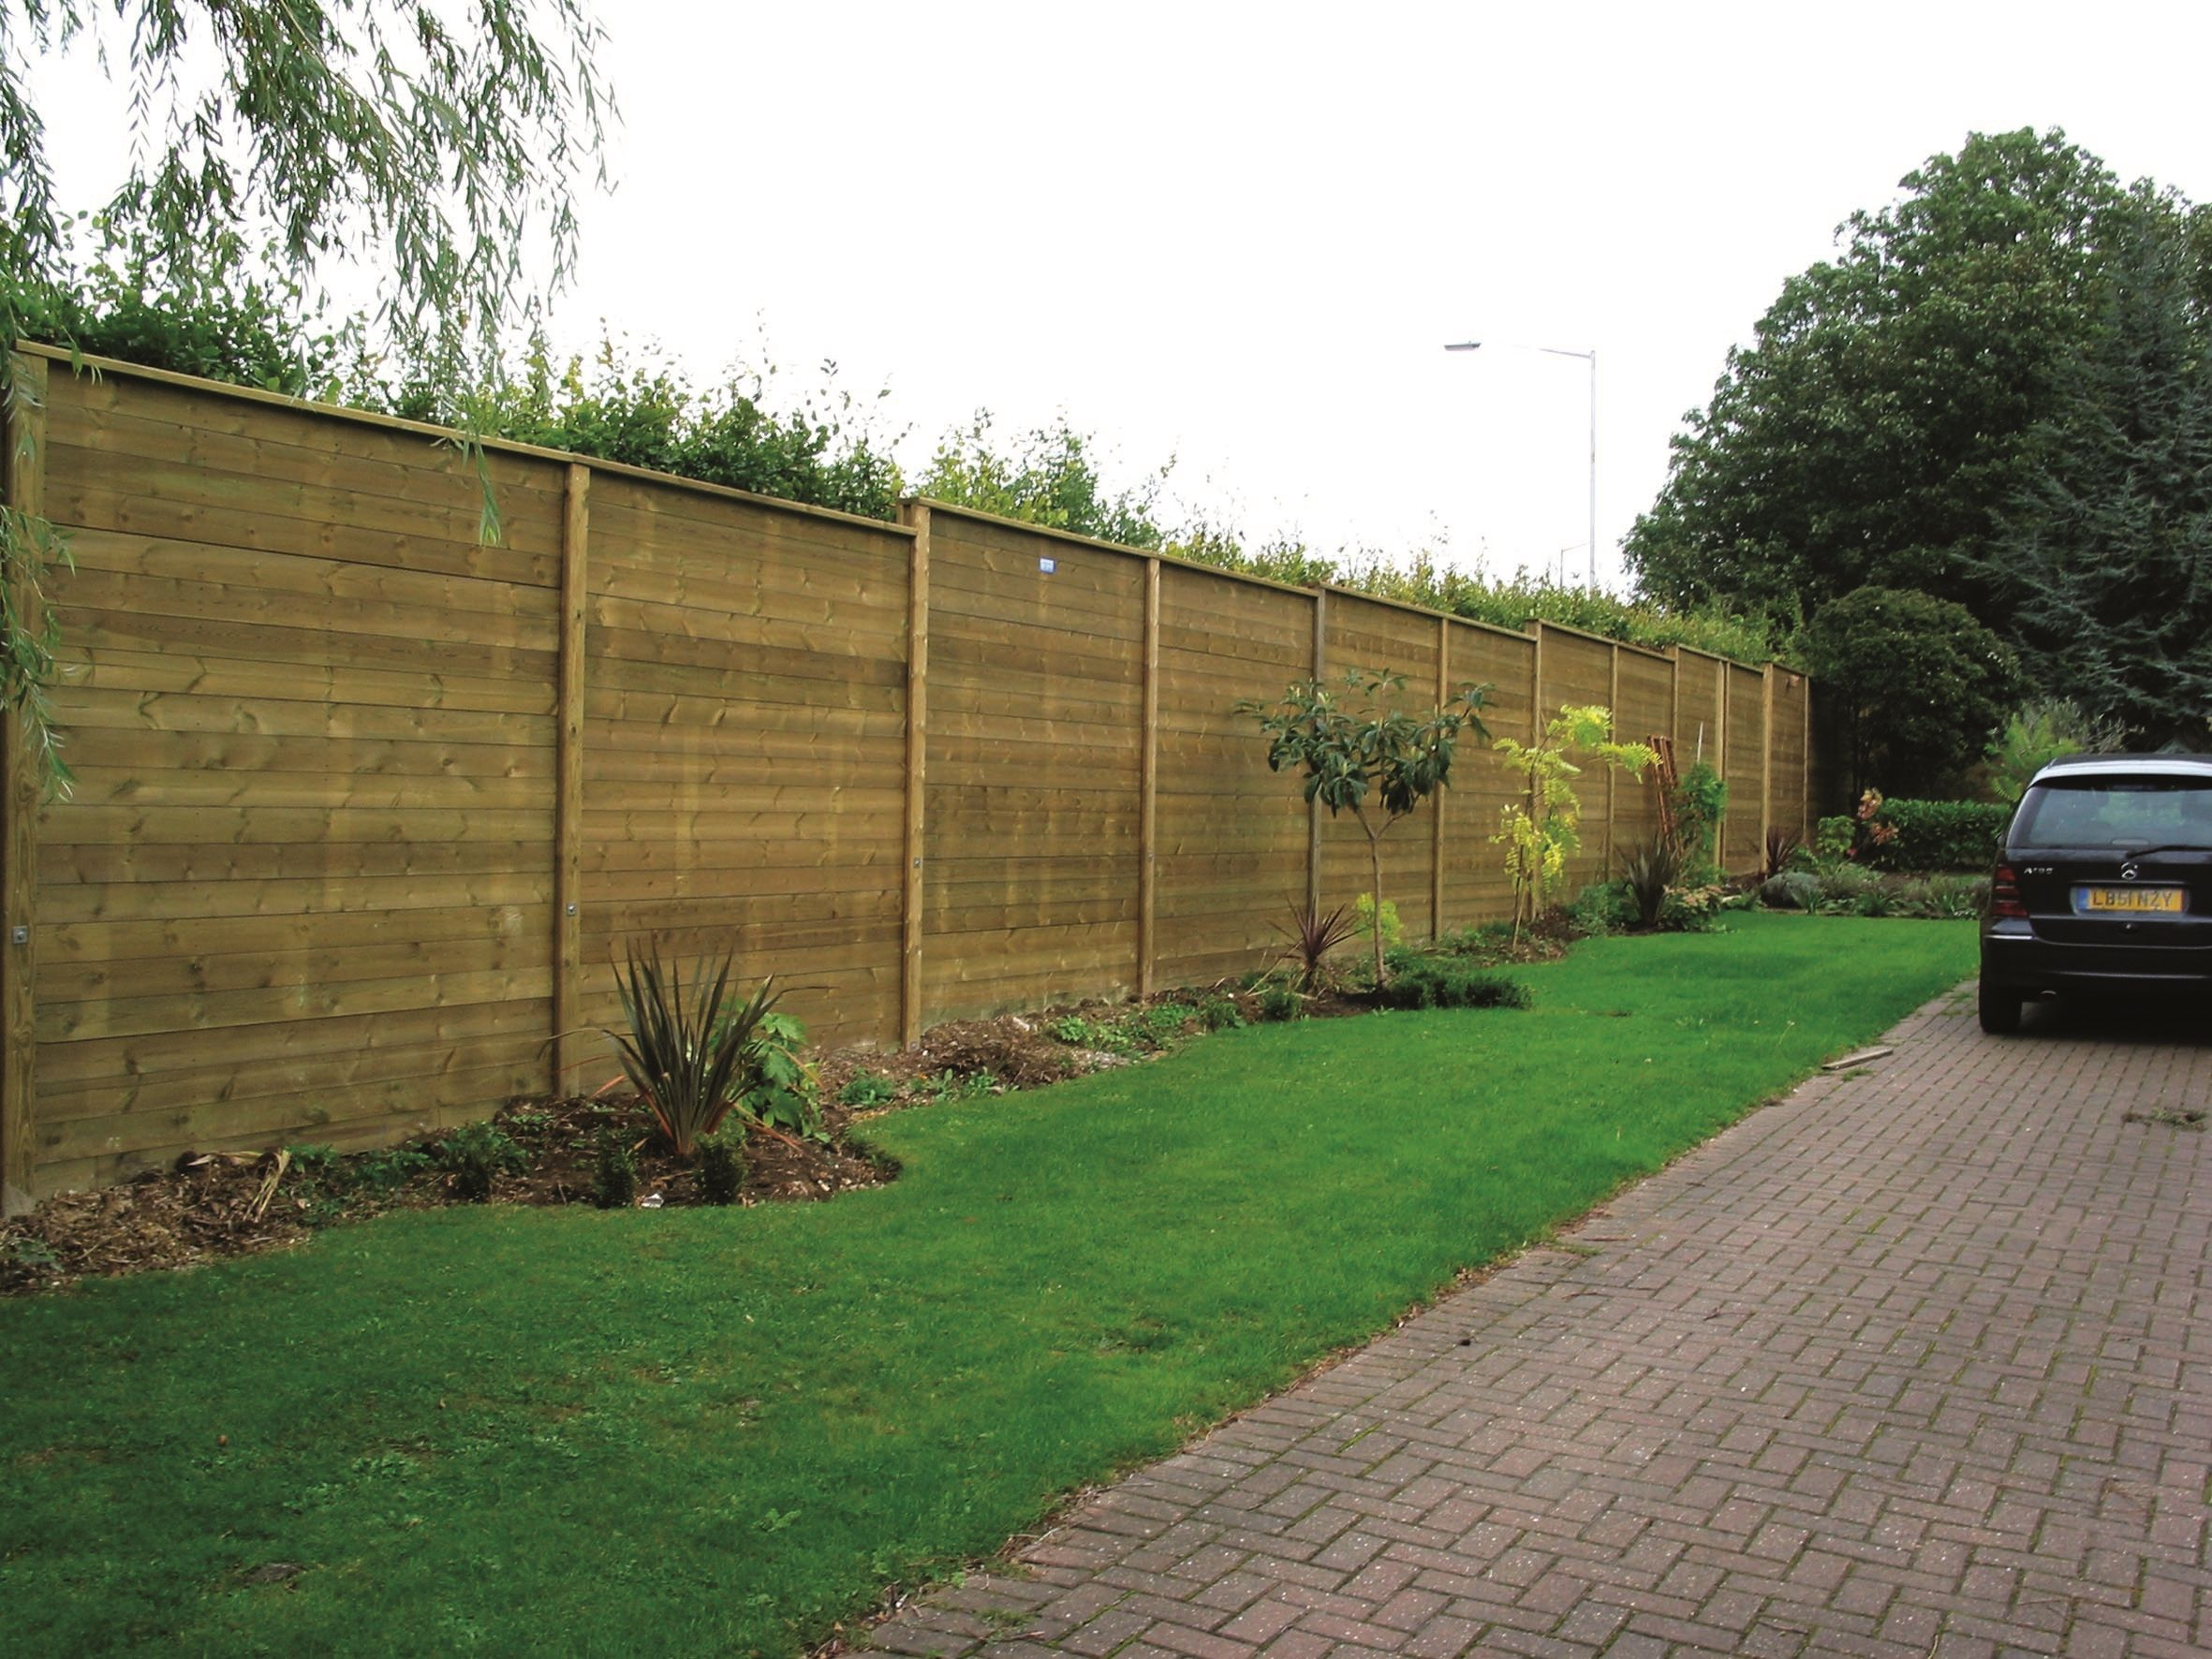 Acoustic fencing in a back garden